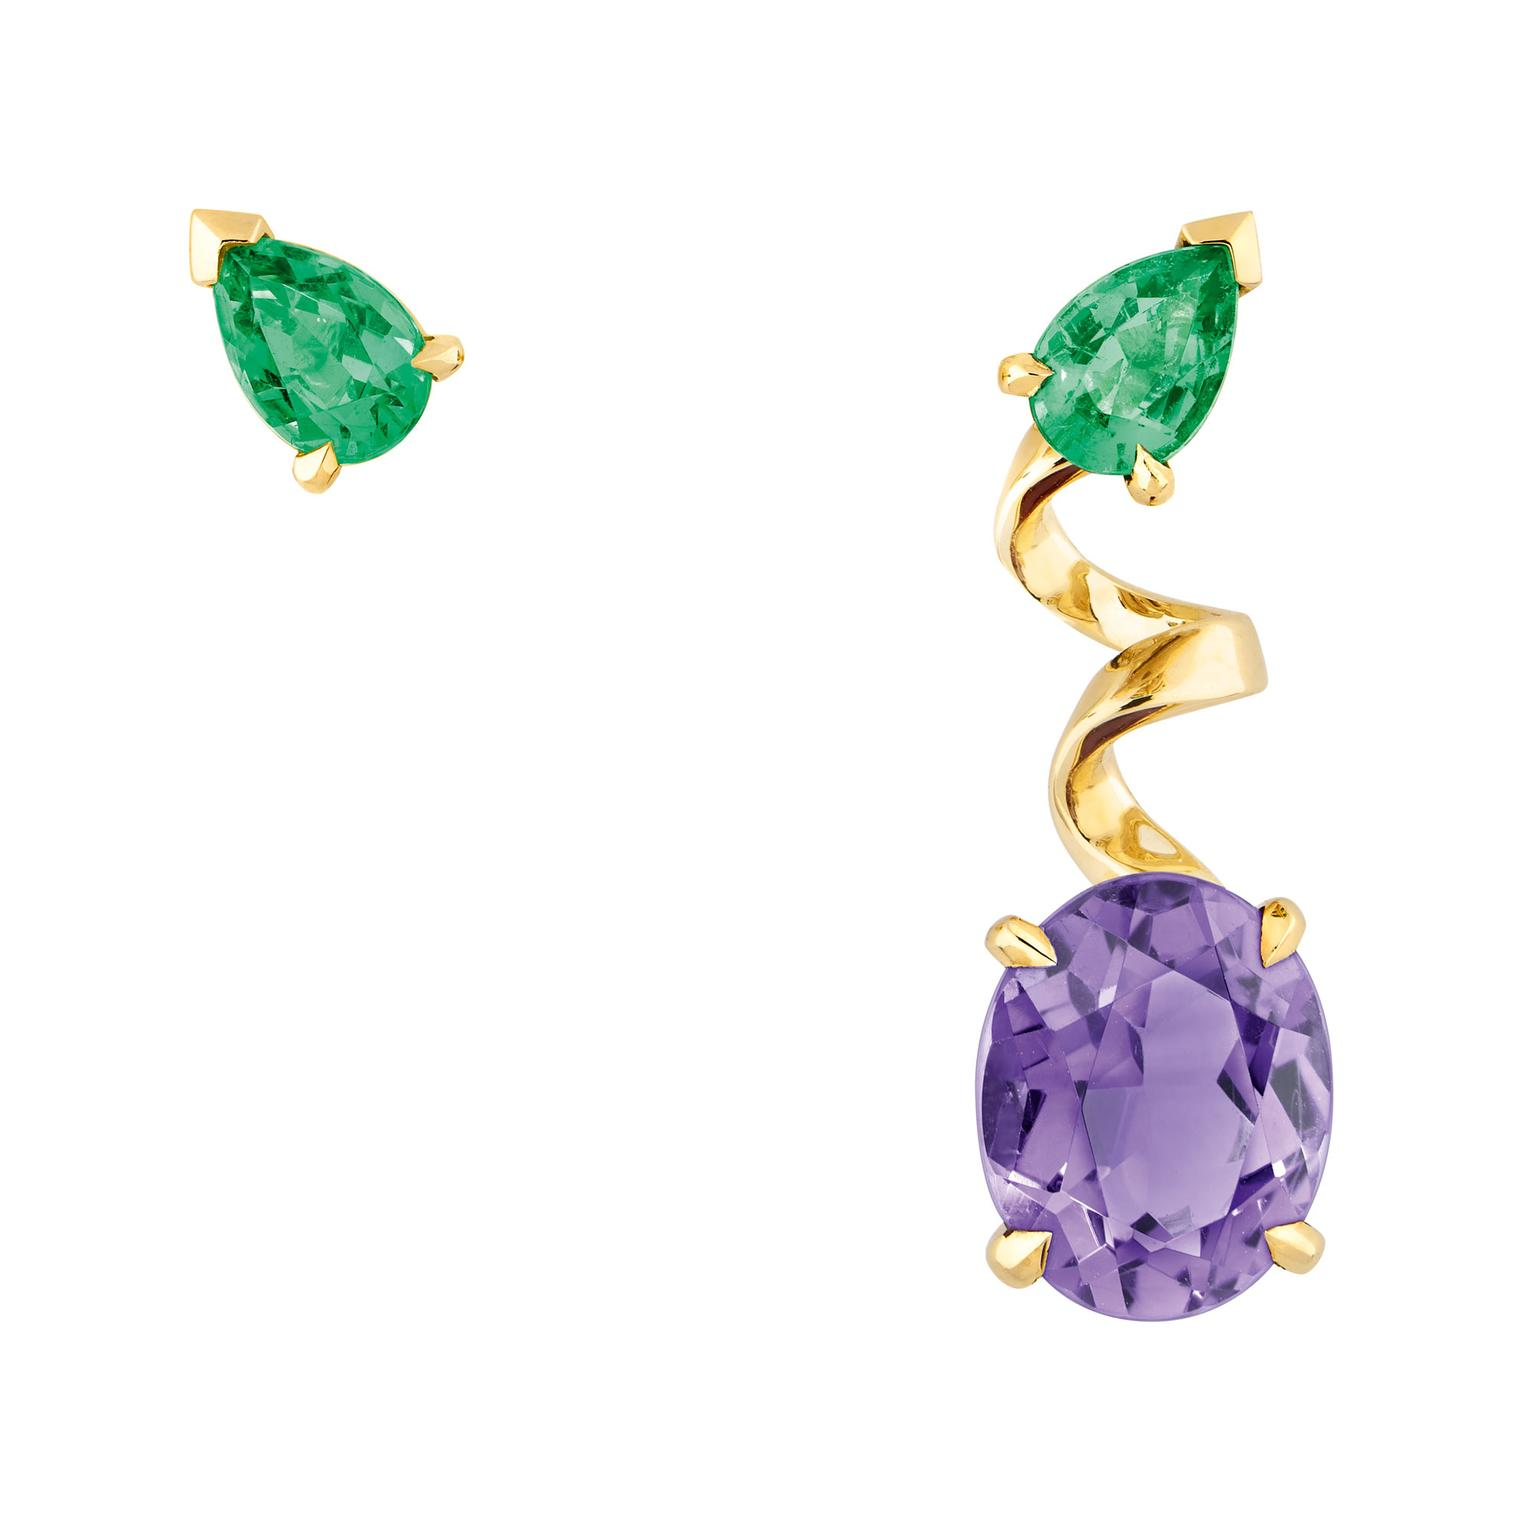 Dior Diorama Precieuse emerald and amethyst mismatched earrings